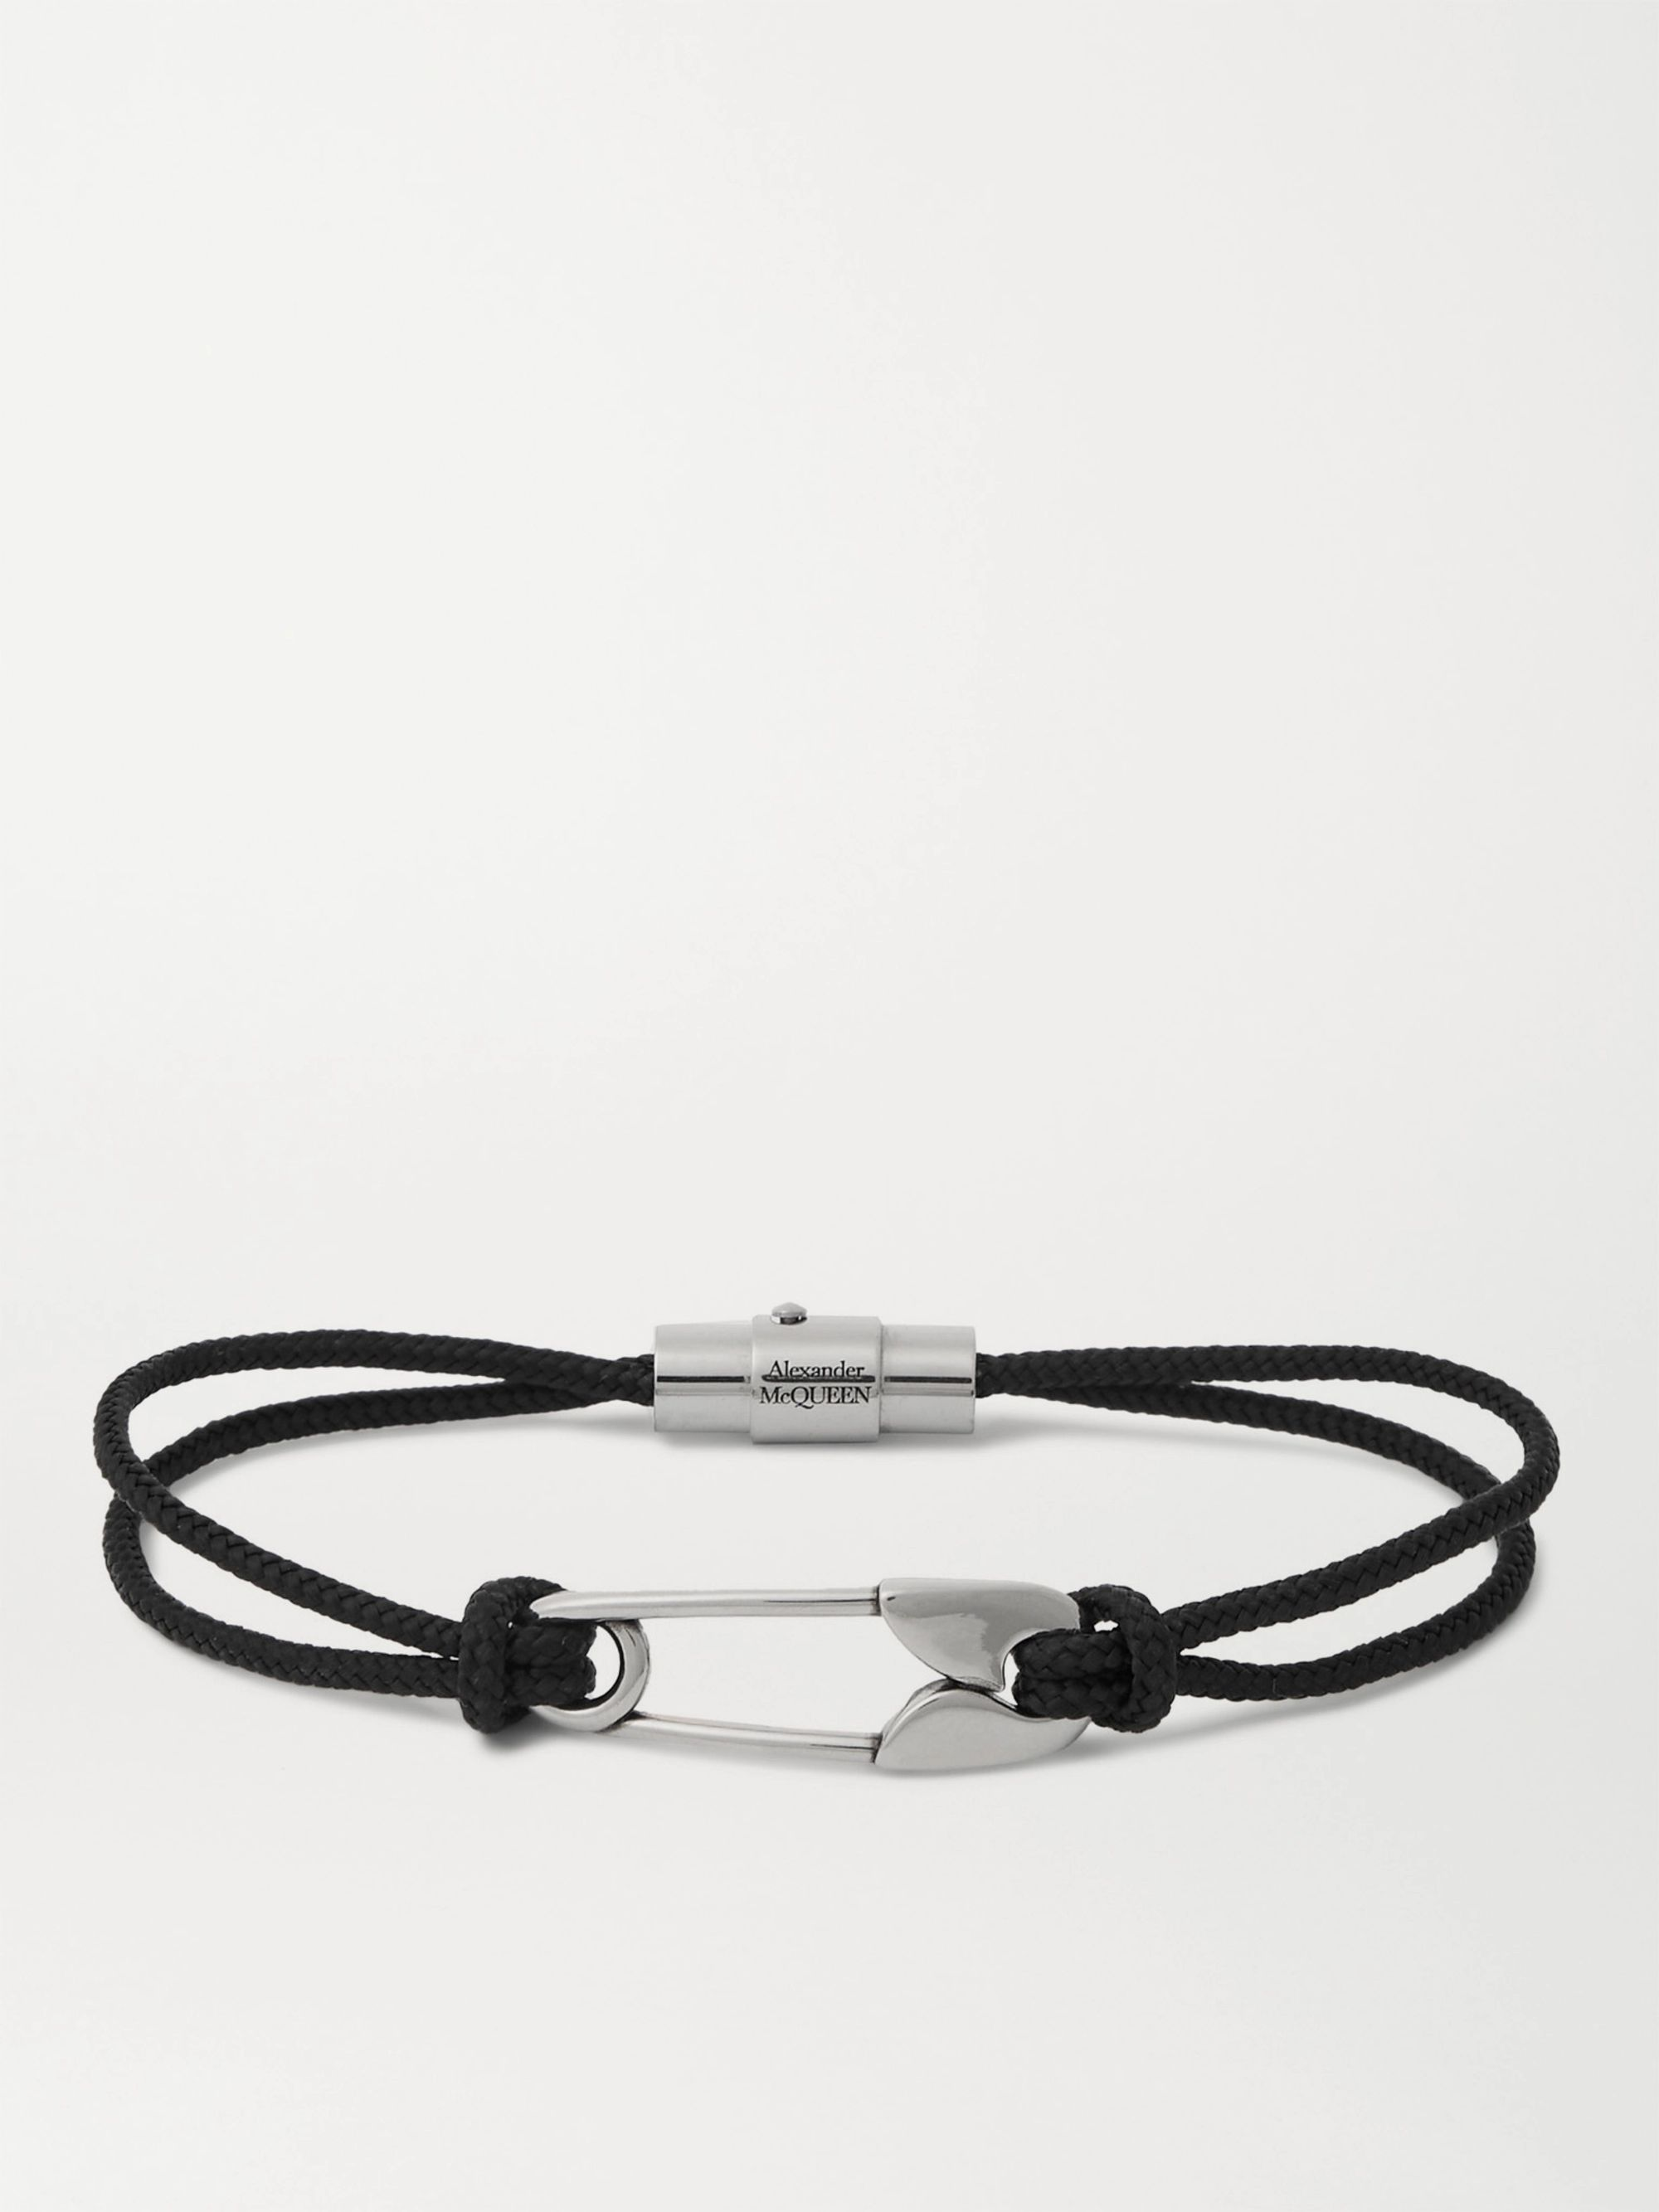 알렉산더 맥퀸 팔찌 Alexander McQueen Safety Pin Cord and Silver Bracelet,Black